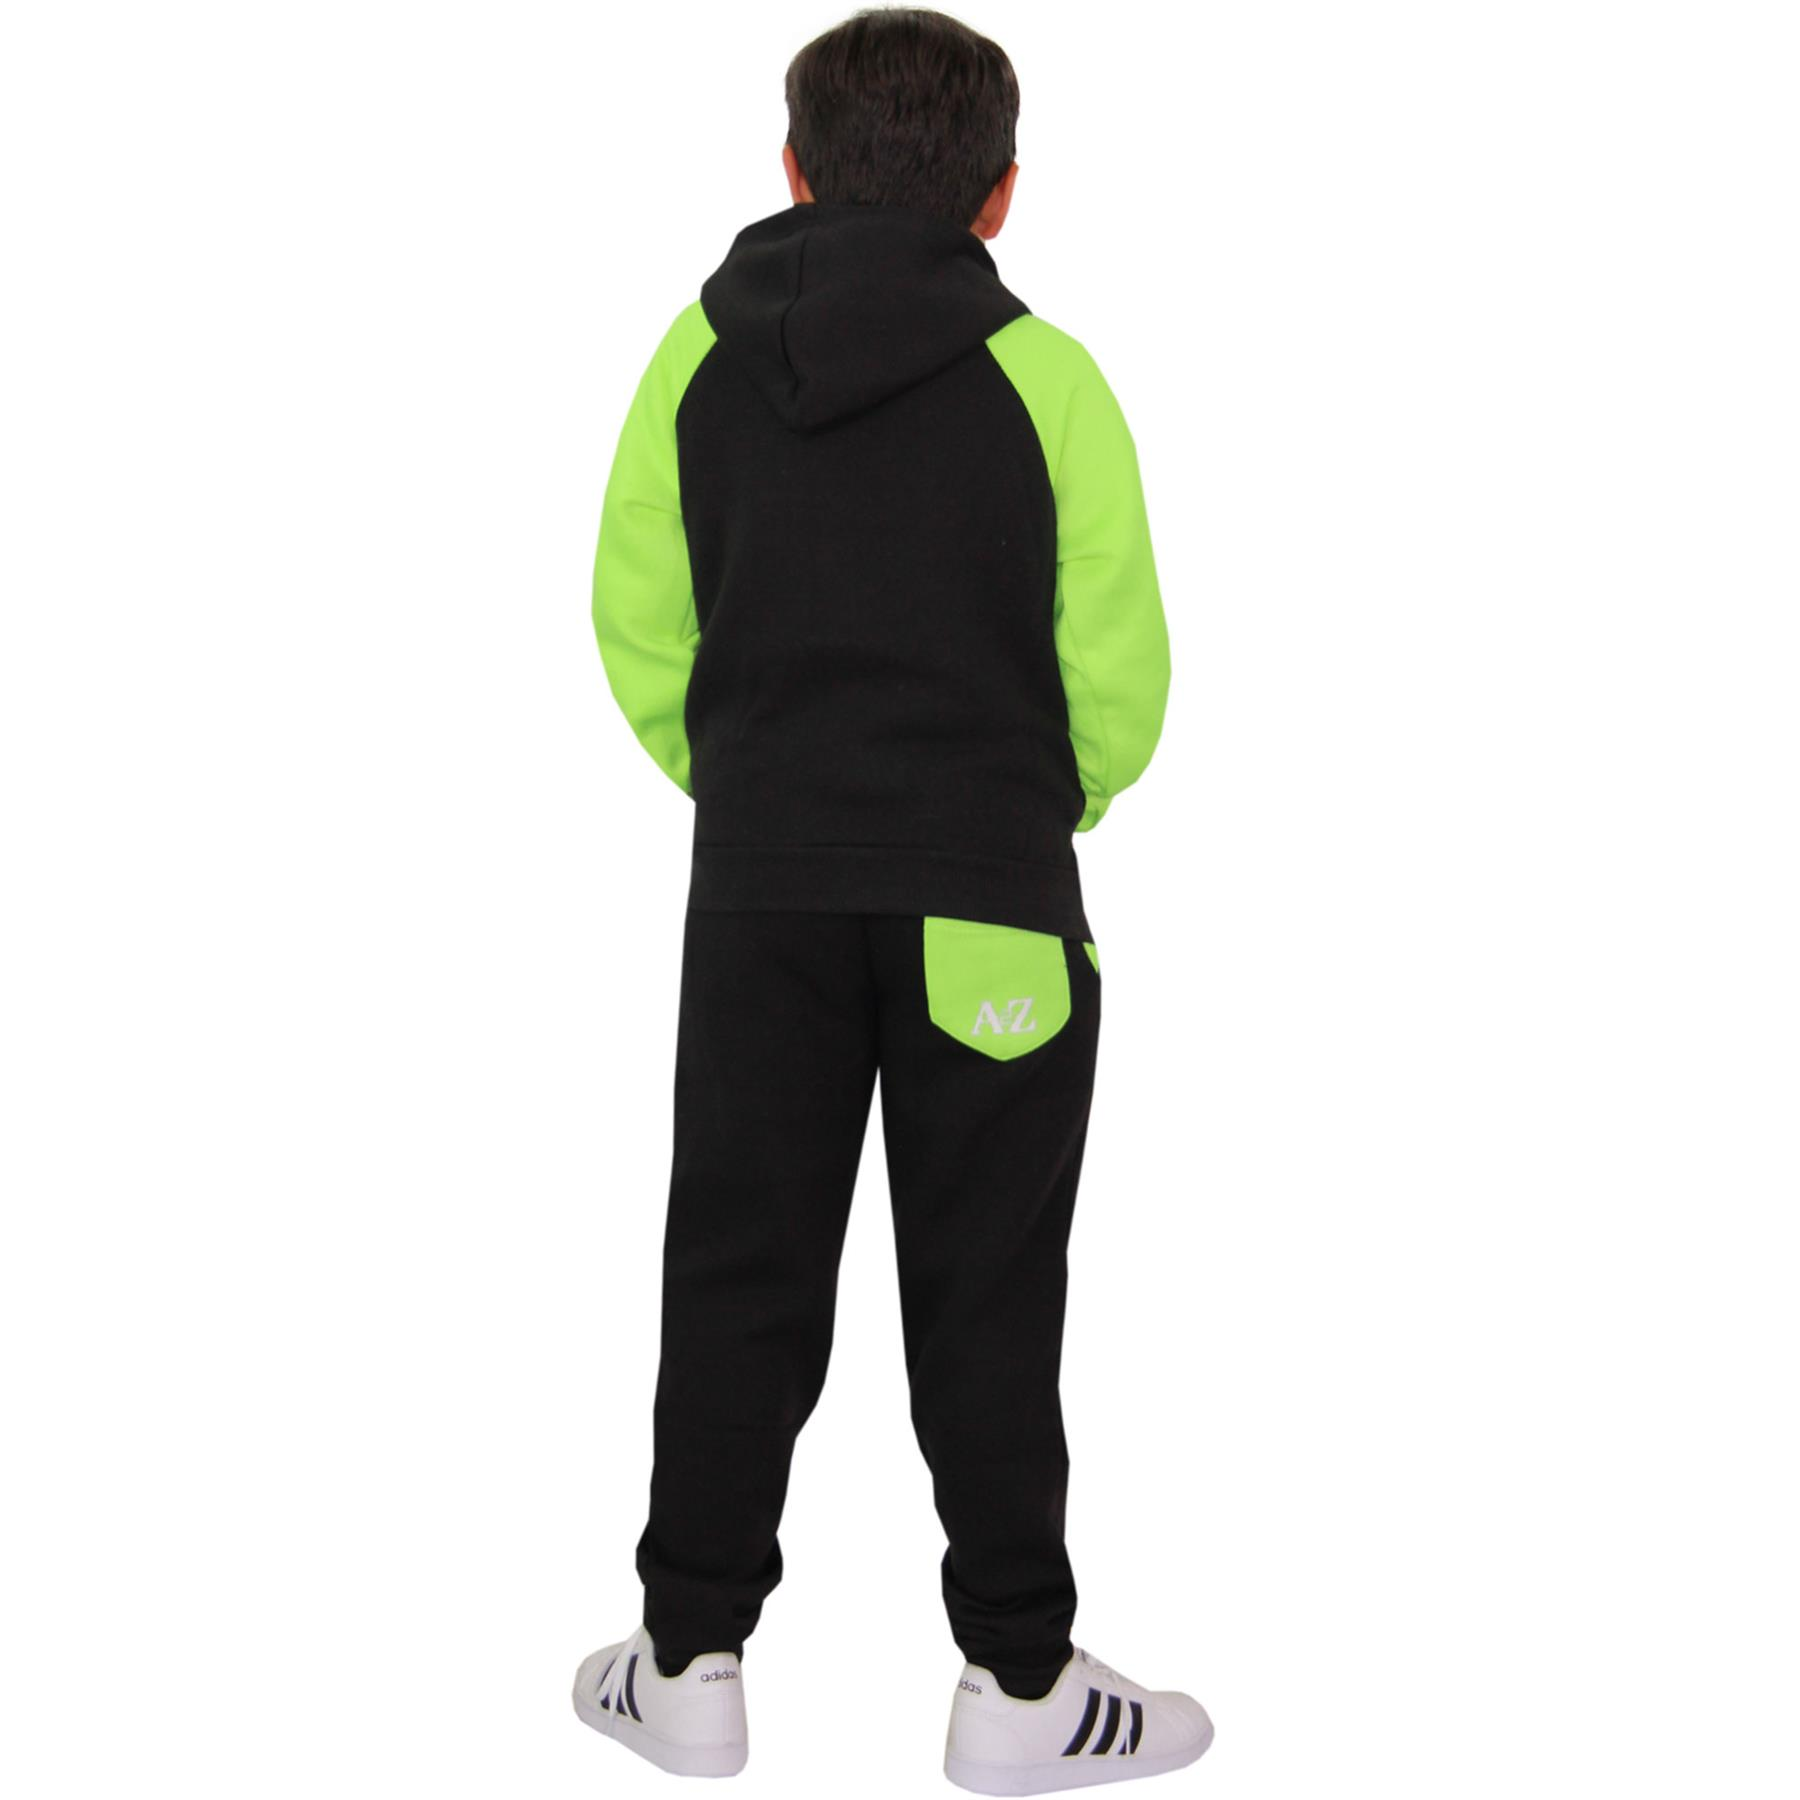 Kids Tracksuit Boys Girls Designer/'s Pedal Power Jogging Suit Top Bottom 7-13 Yr